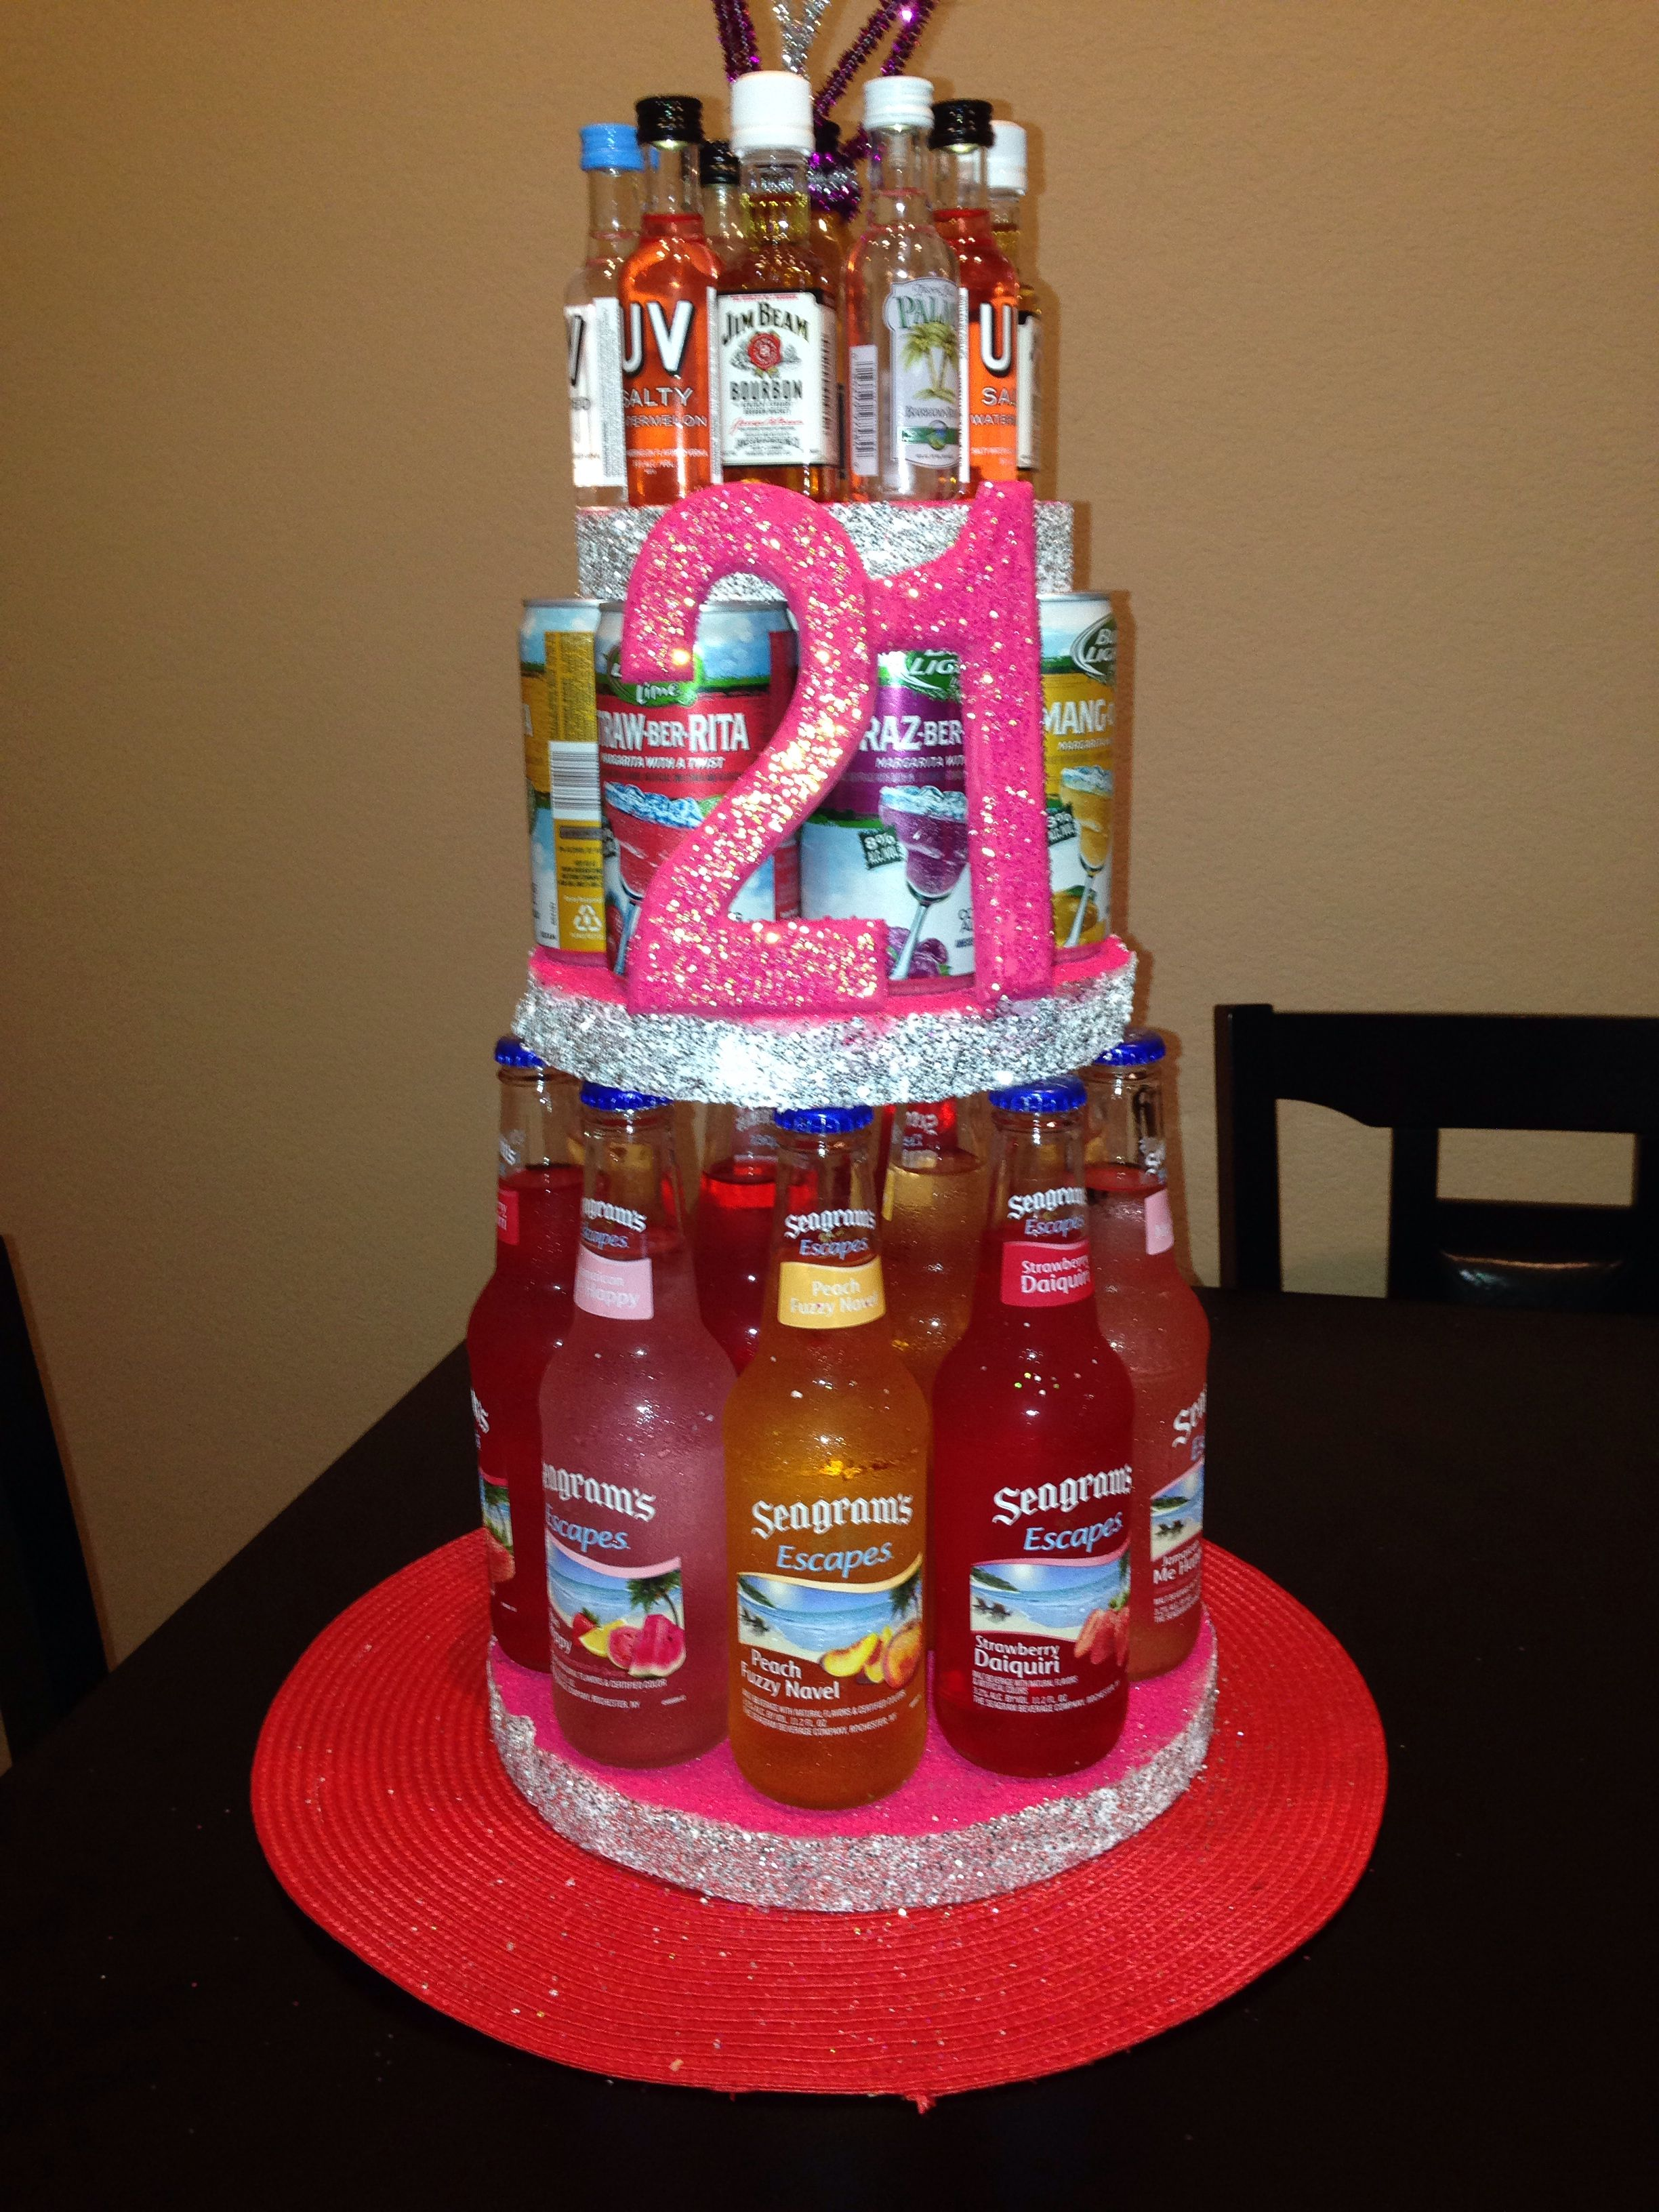 wine themed kitchen accessories cabinets diy 21st alcohol birthday cake | pinterest ...